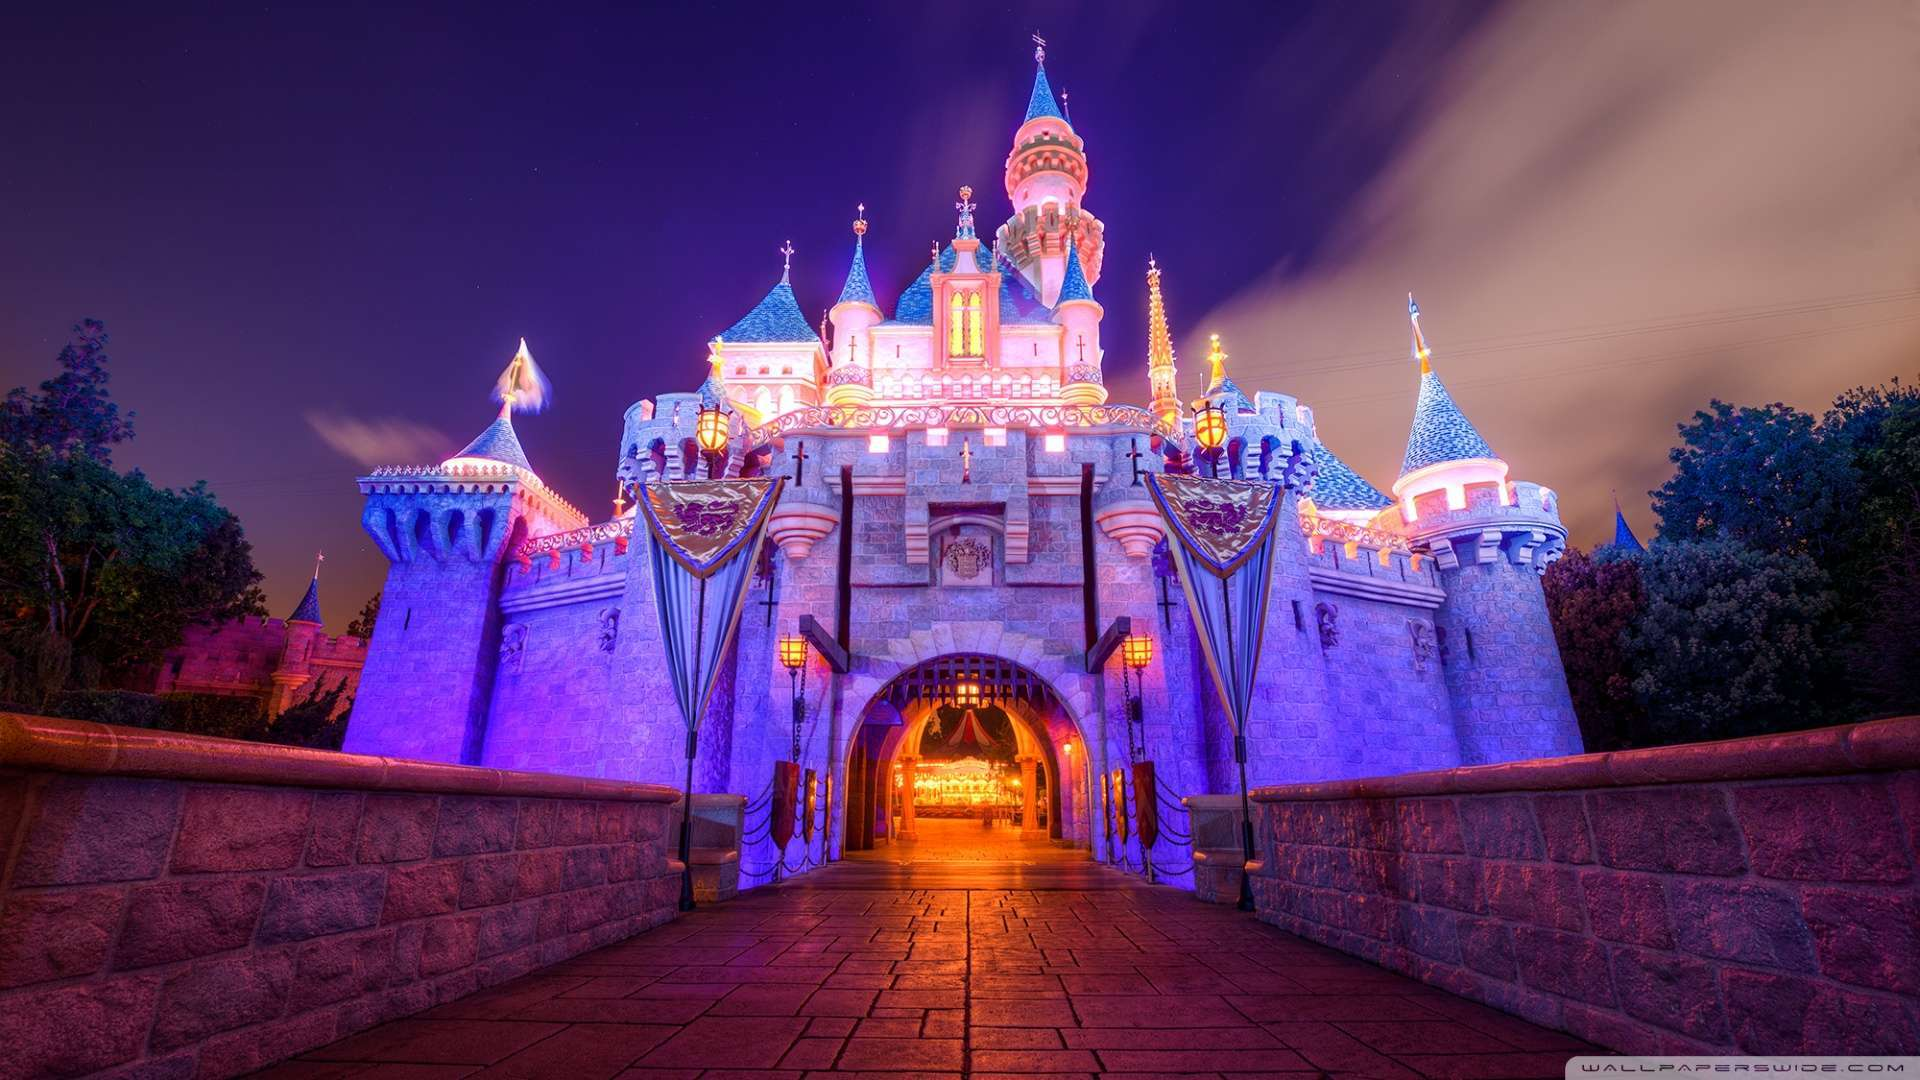 Disneyland Castle Wallpaper - WallpaperSafari